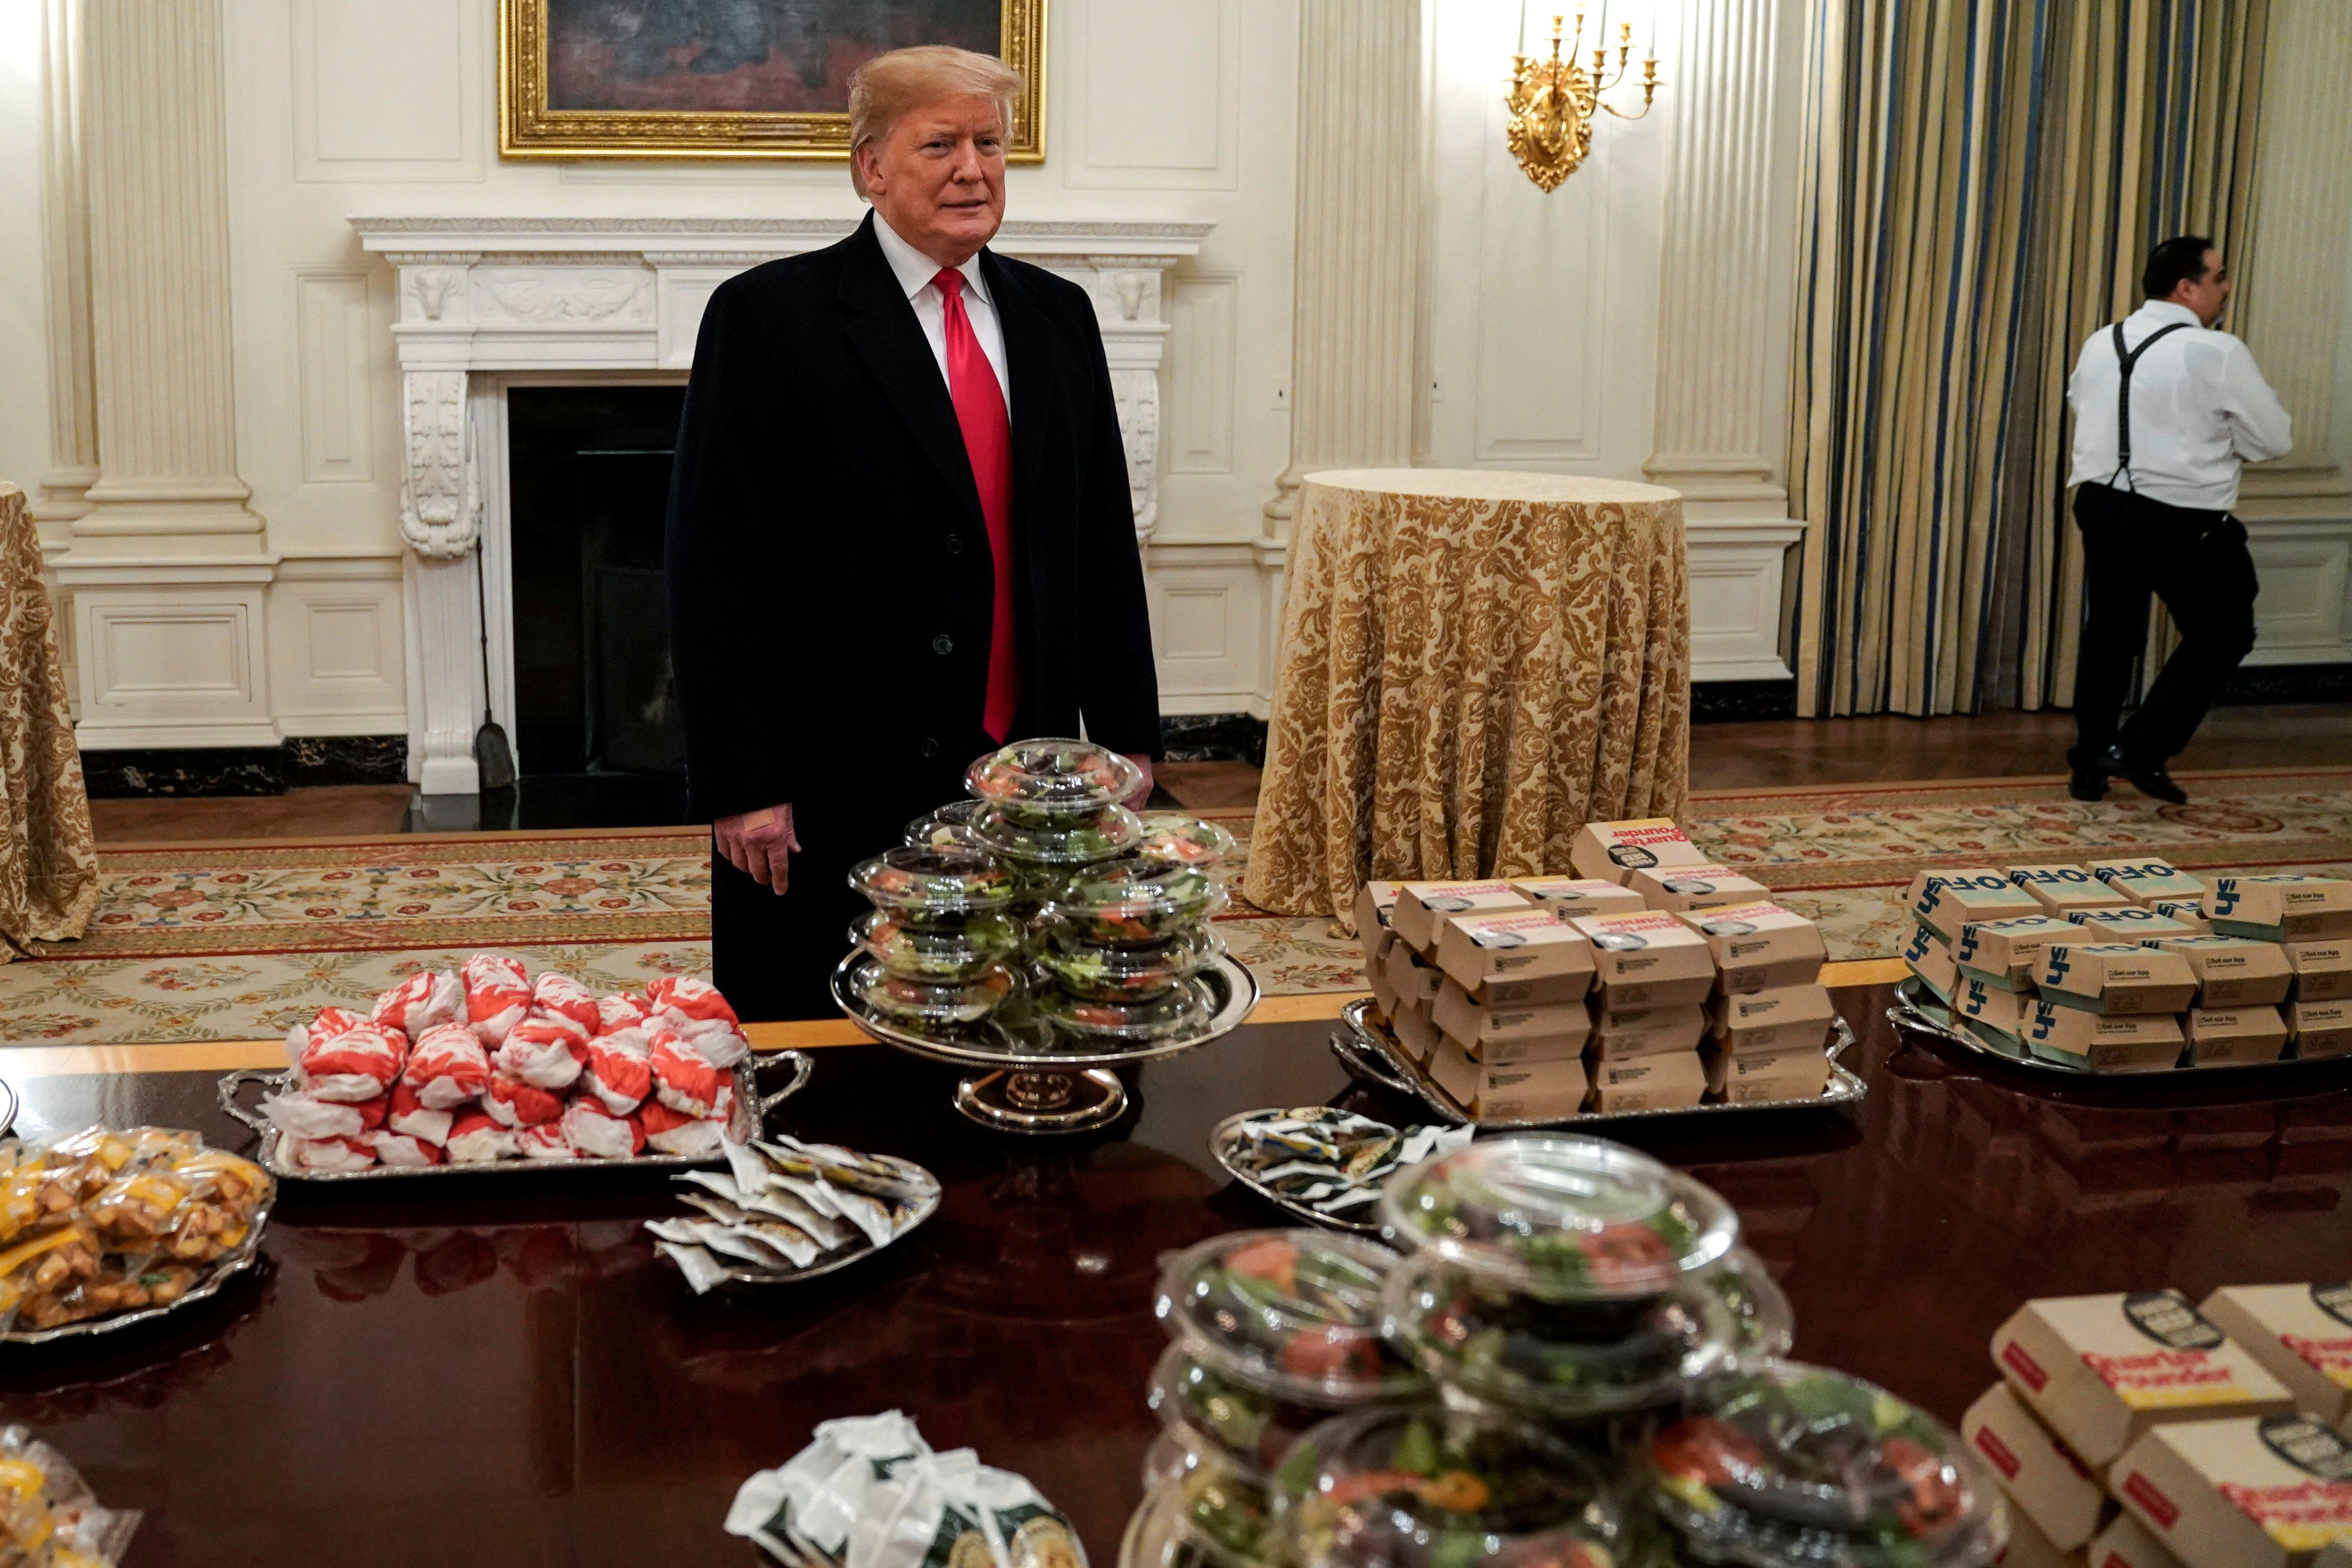 Donald Trump with the 'feast' he provided college football